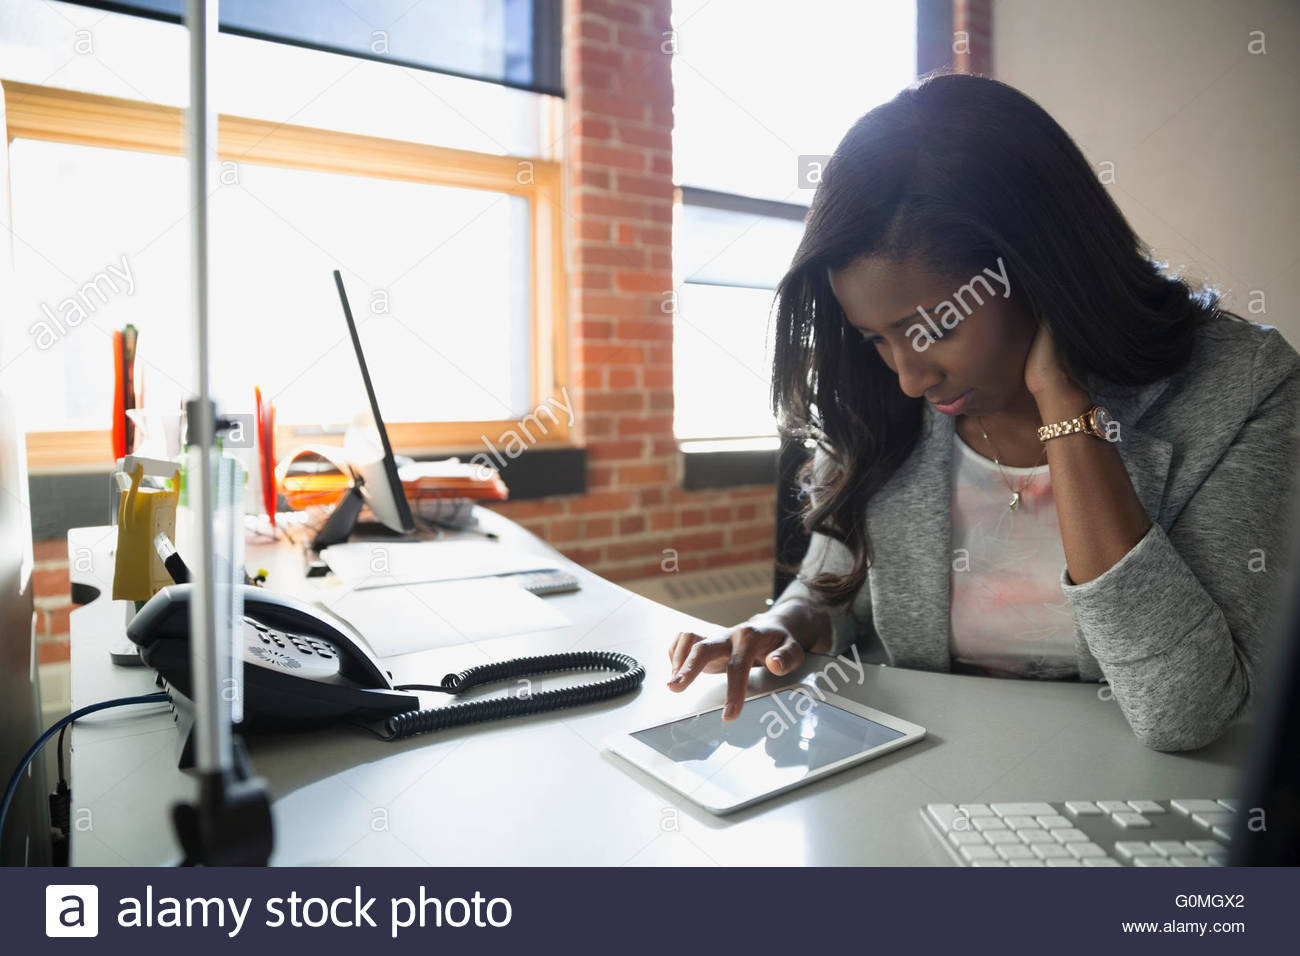 Businesswoman using digital tablet at office desk Photo Stock